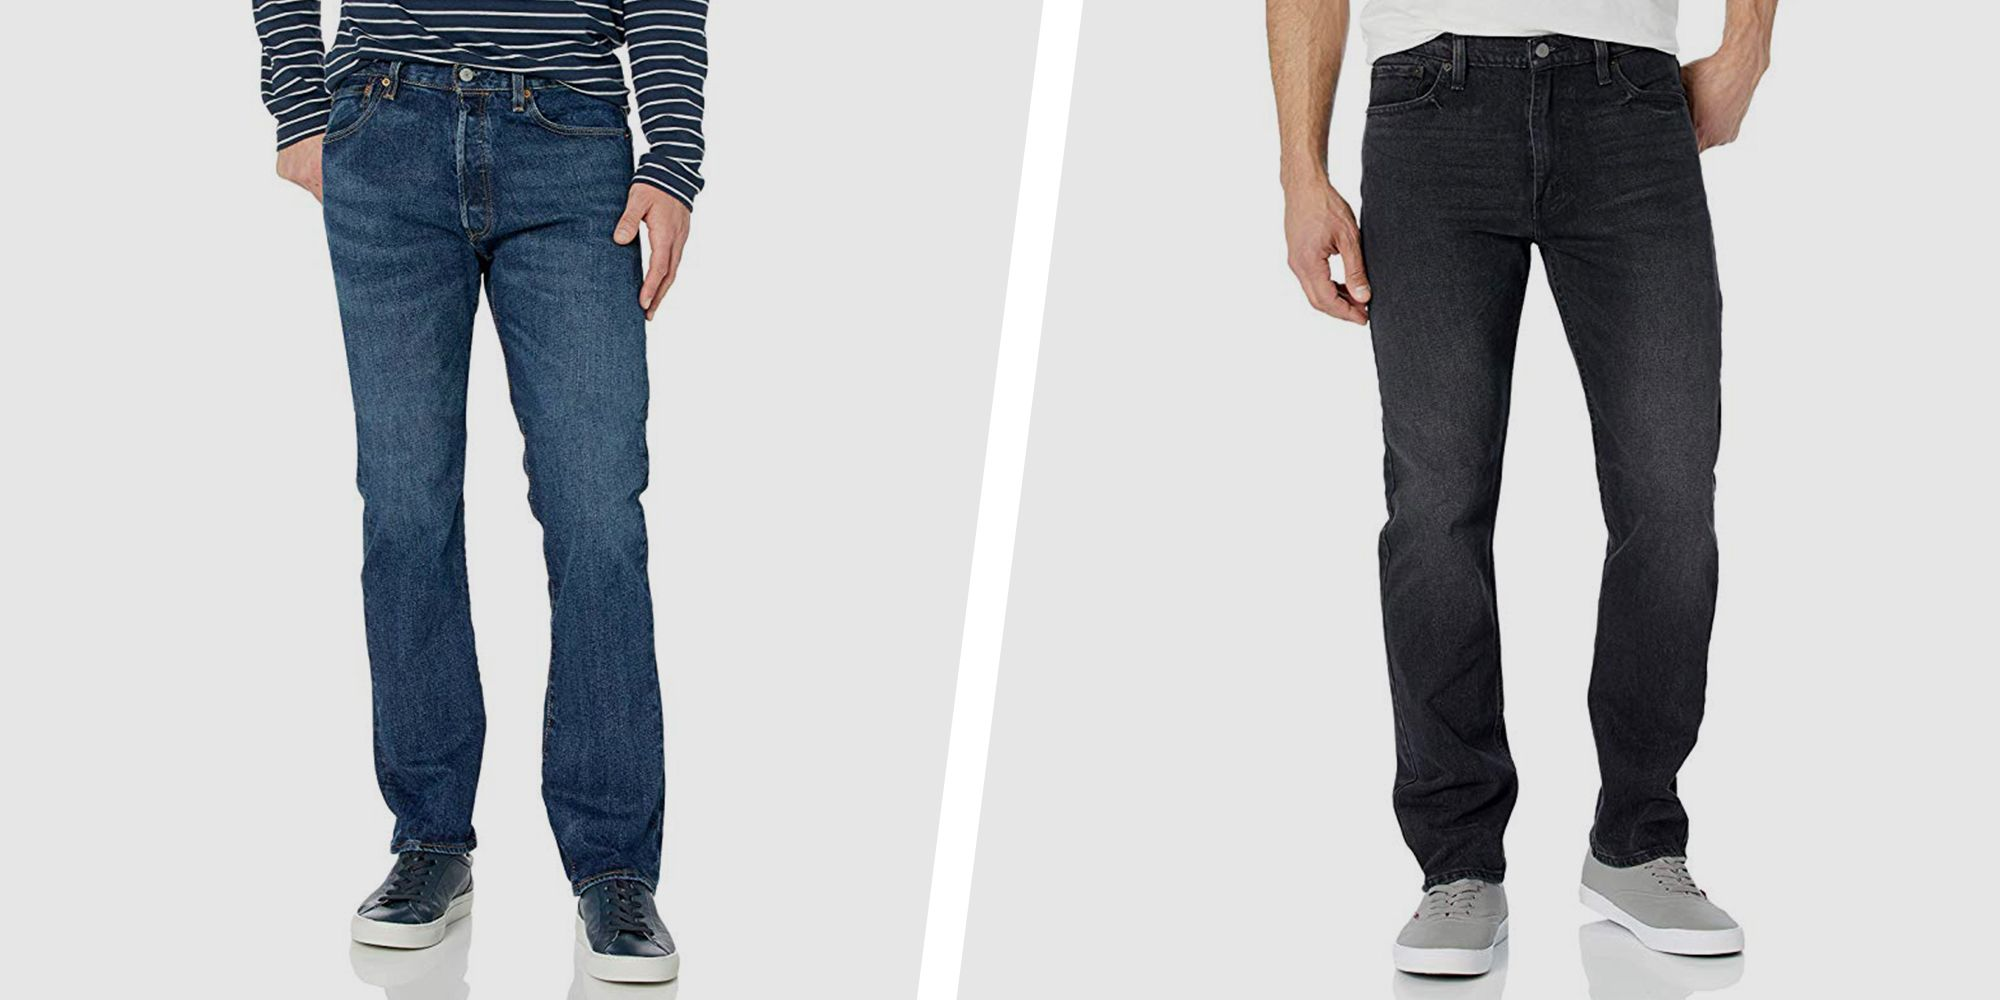 Amazon's Having a Great Sale on Levi's Men's Jeans Right Now